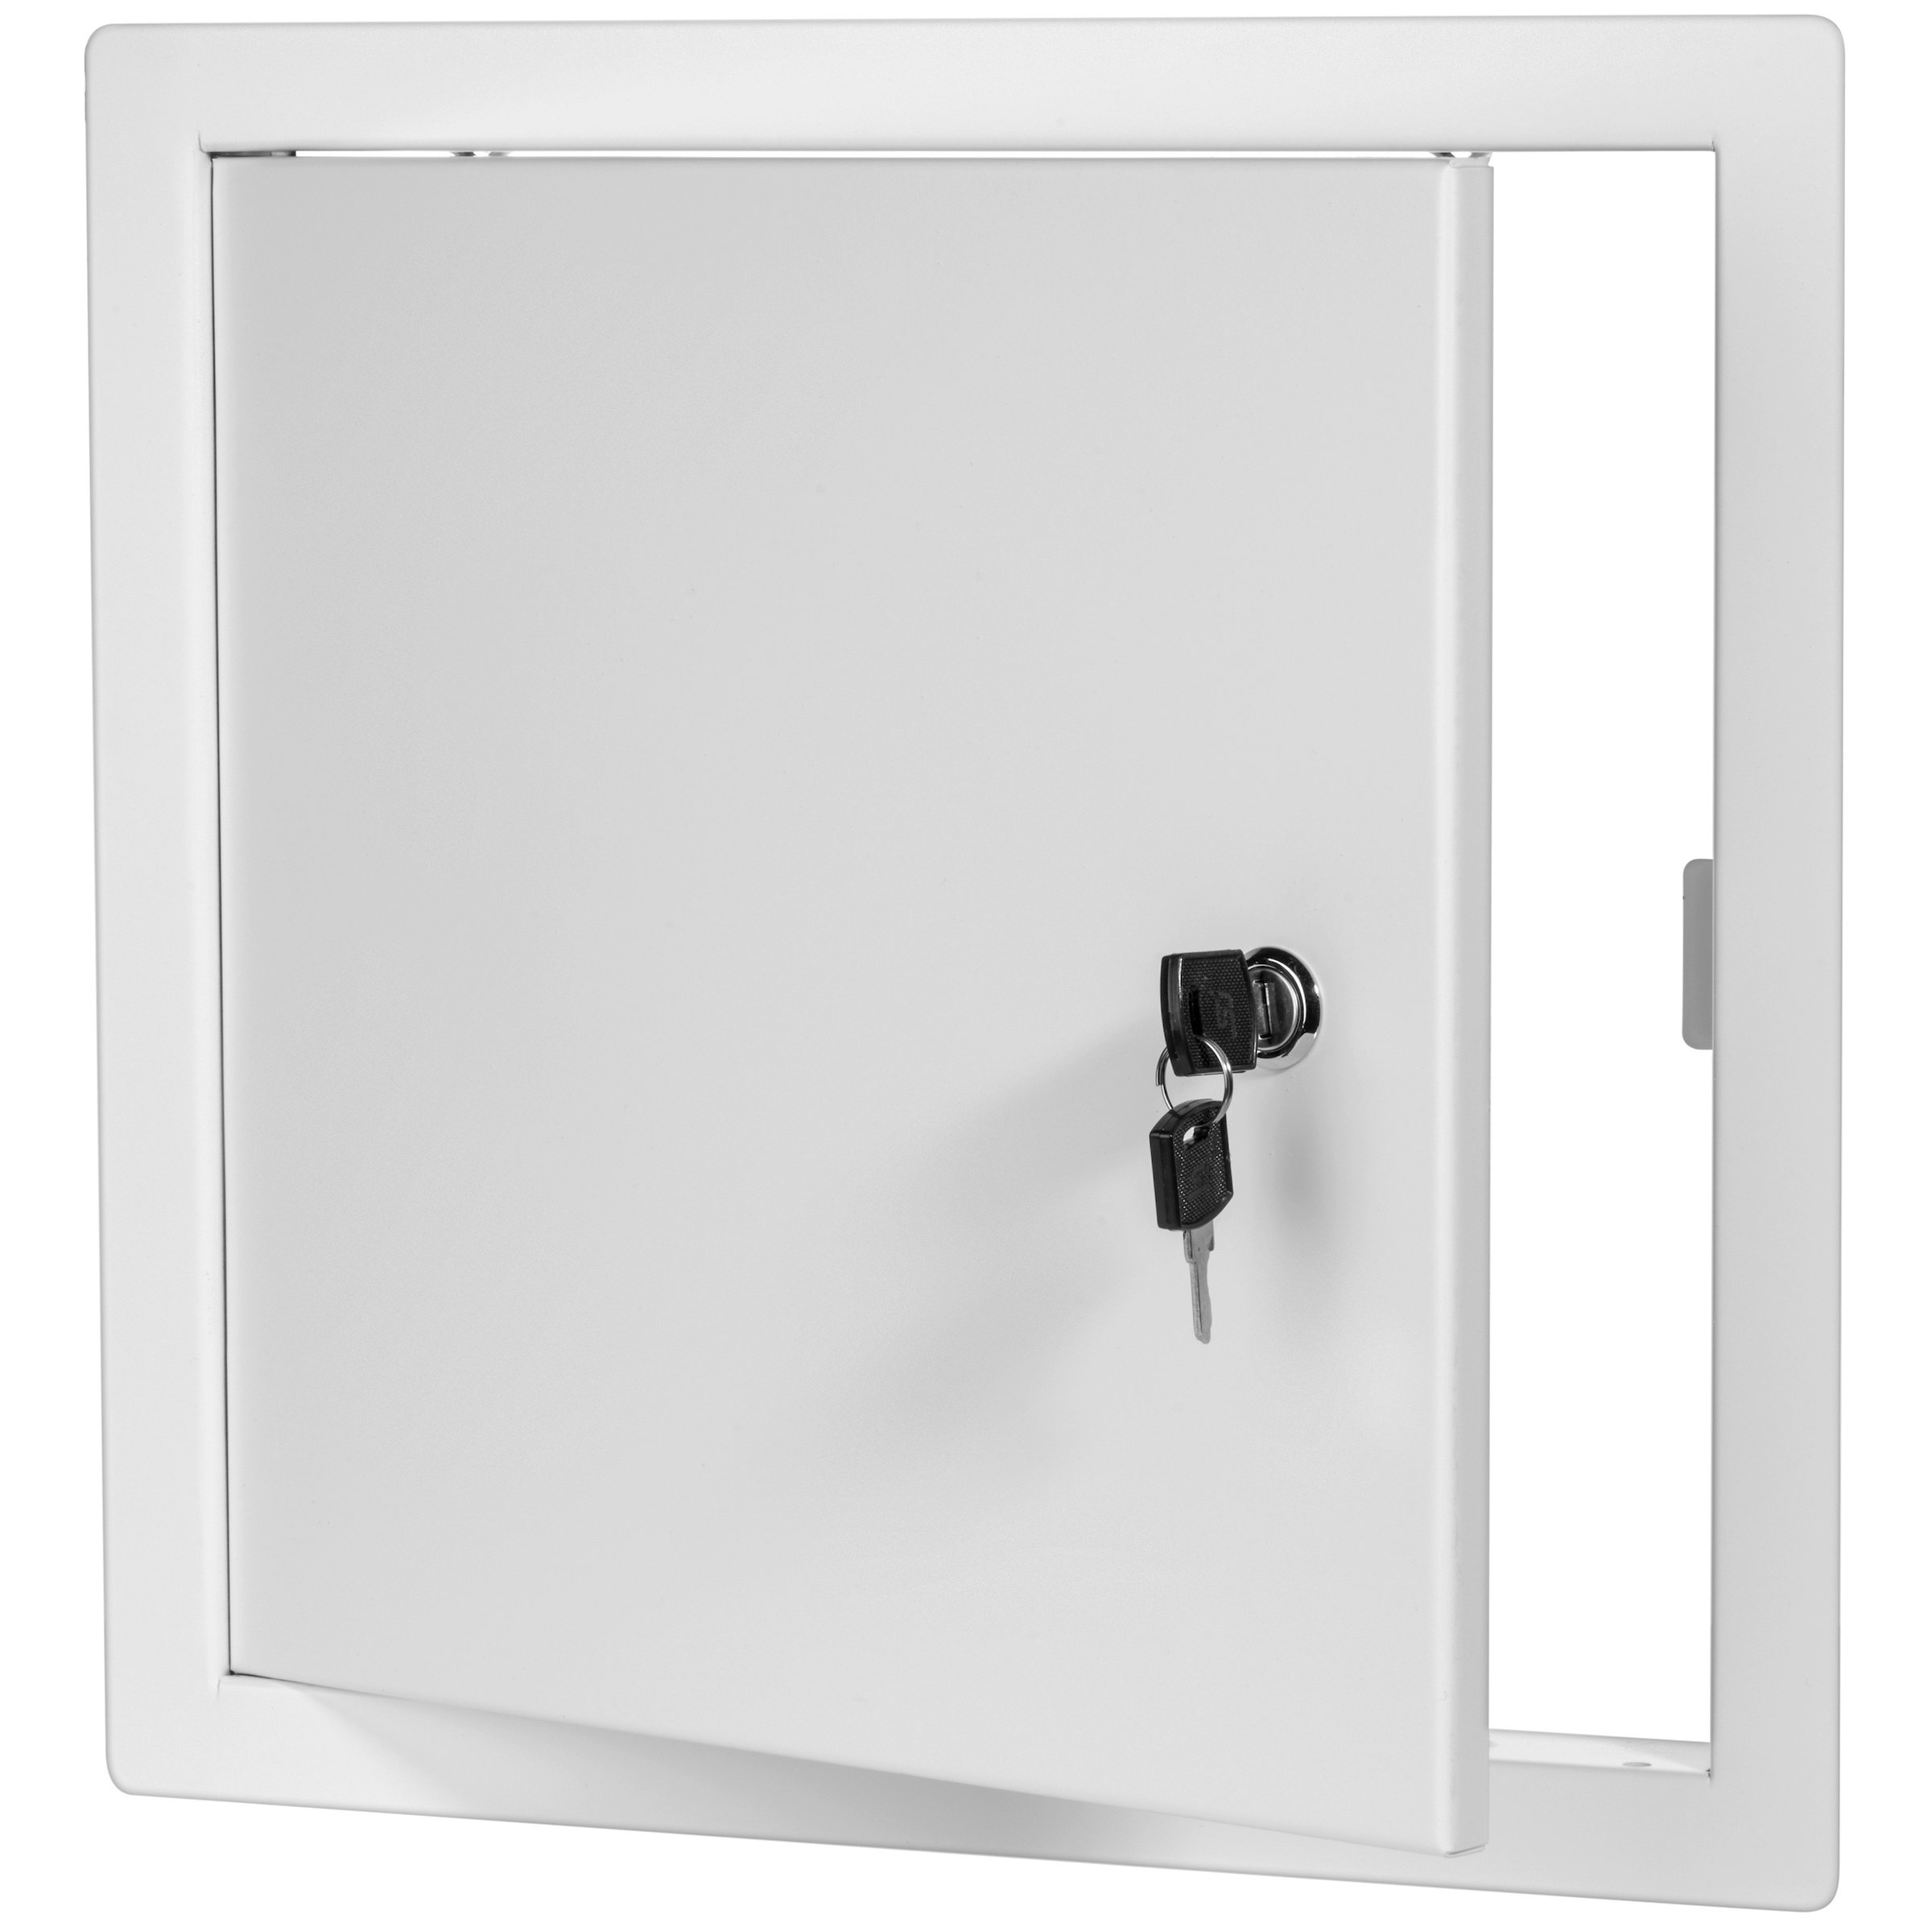 Premier 2002 Series Steel Access Door, 18 x 18 Flush Universal Mount, White (Keyed Cylinder Latch)